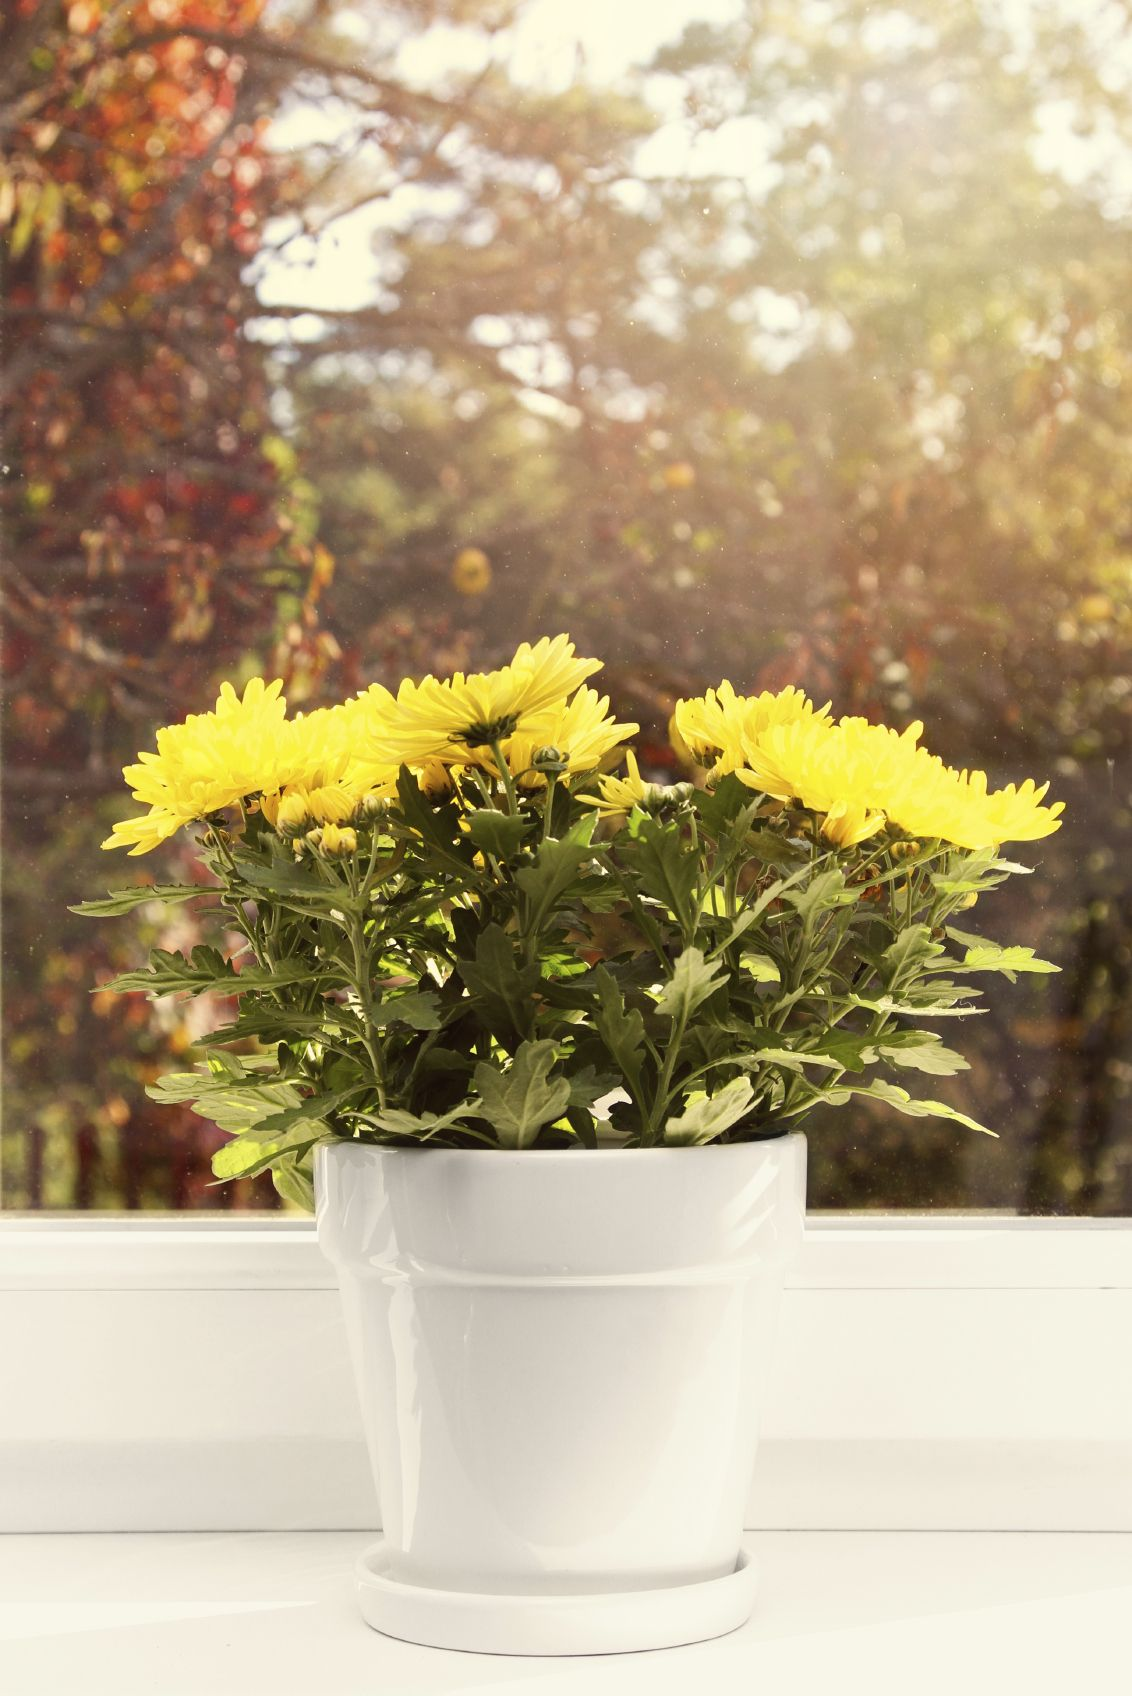 Indoor Mum Care Growing Chrysanthemums Indoors Indoor Flowers Indoor Flowering Plants Plants